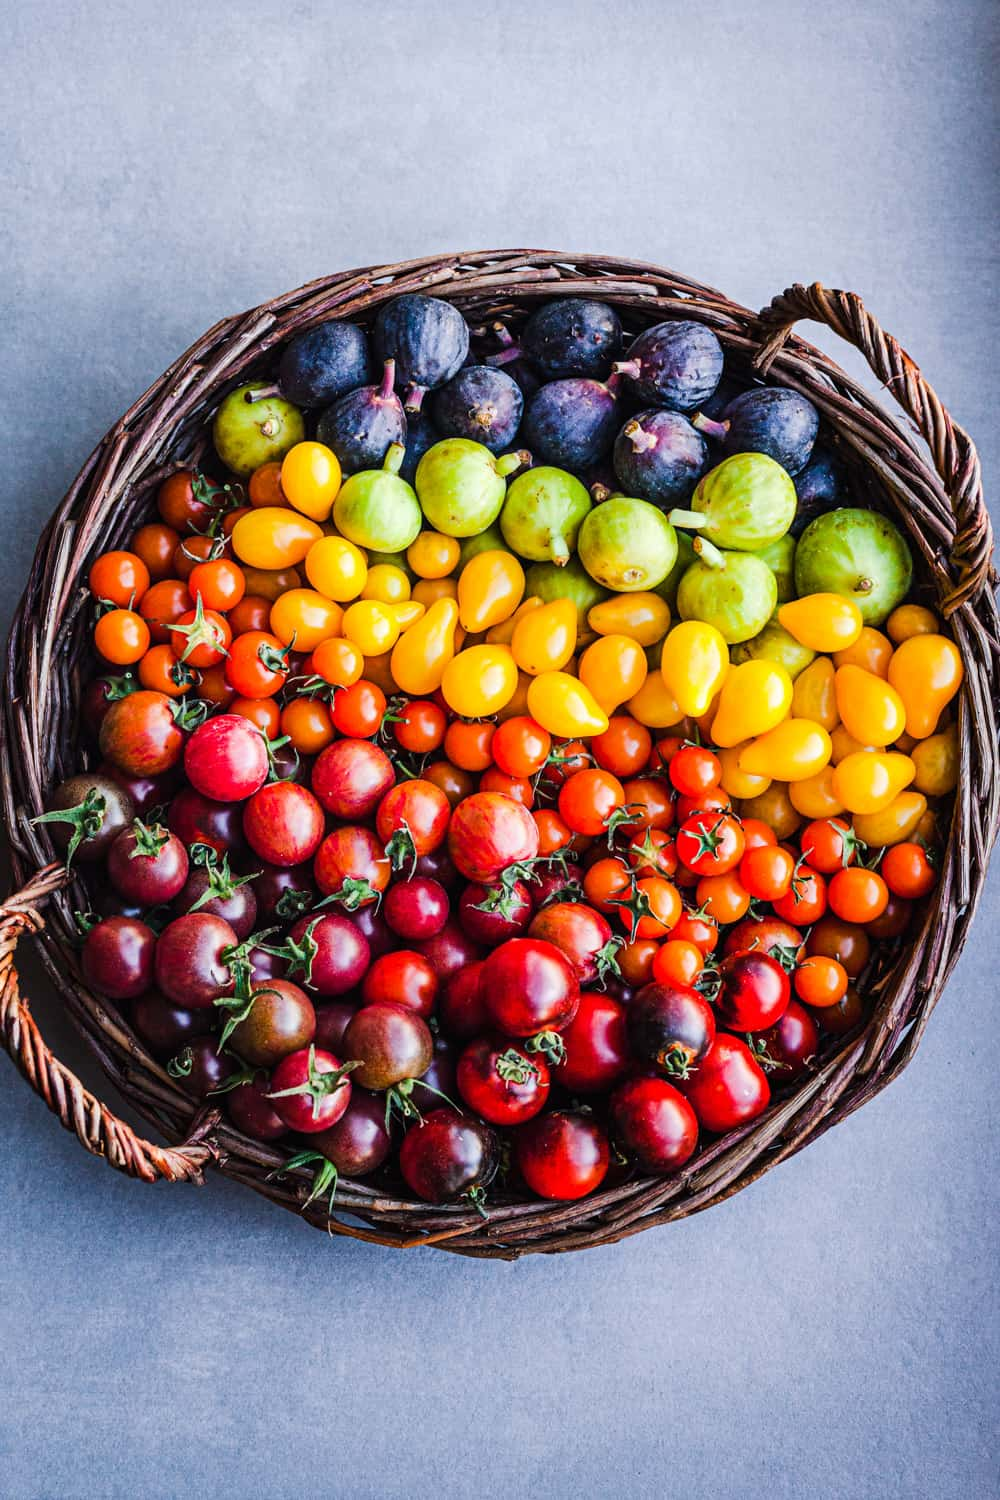 Colorful cherry tomatoes and figs in a basket.